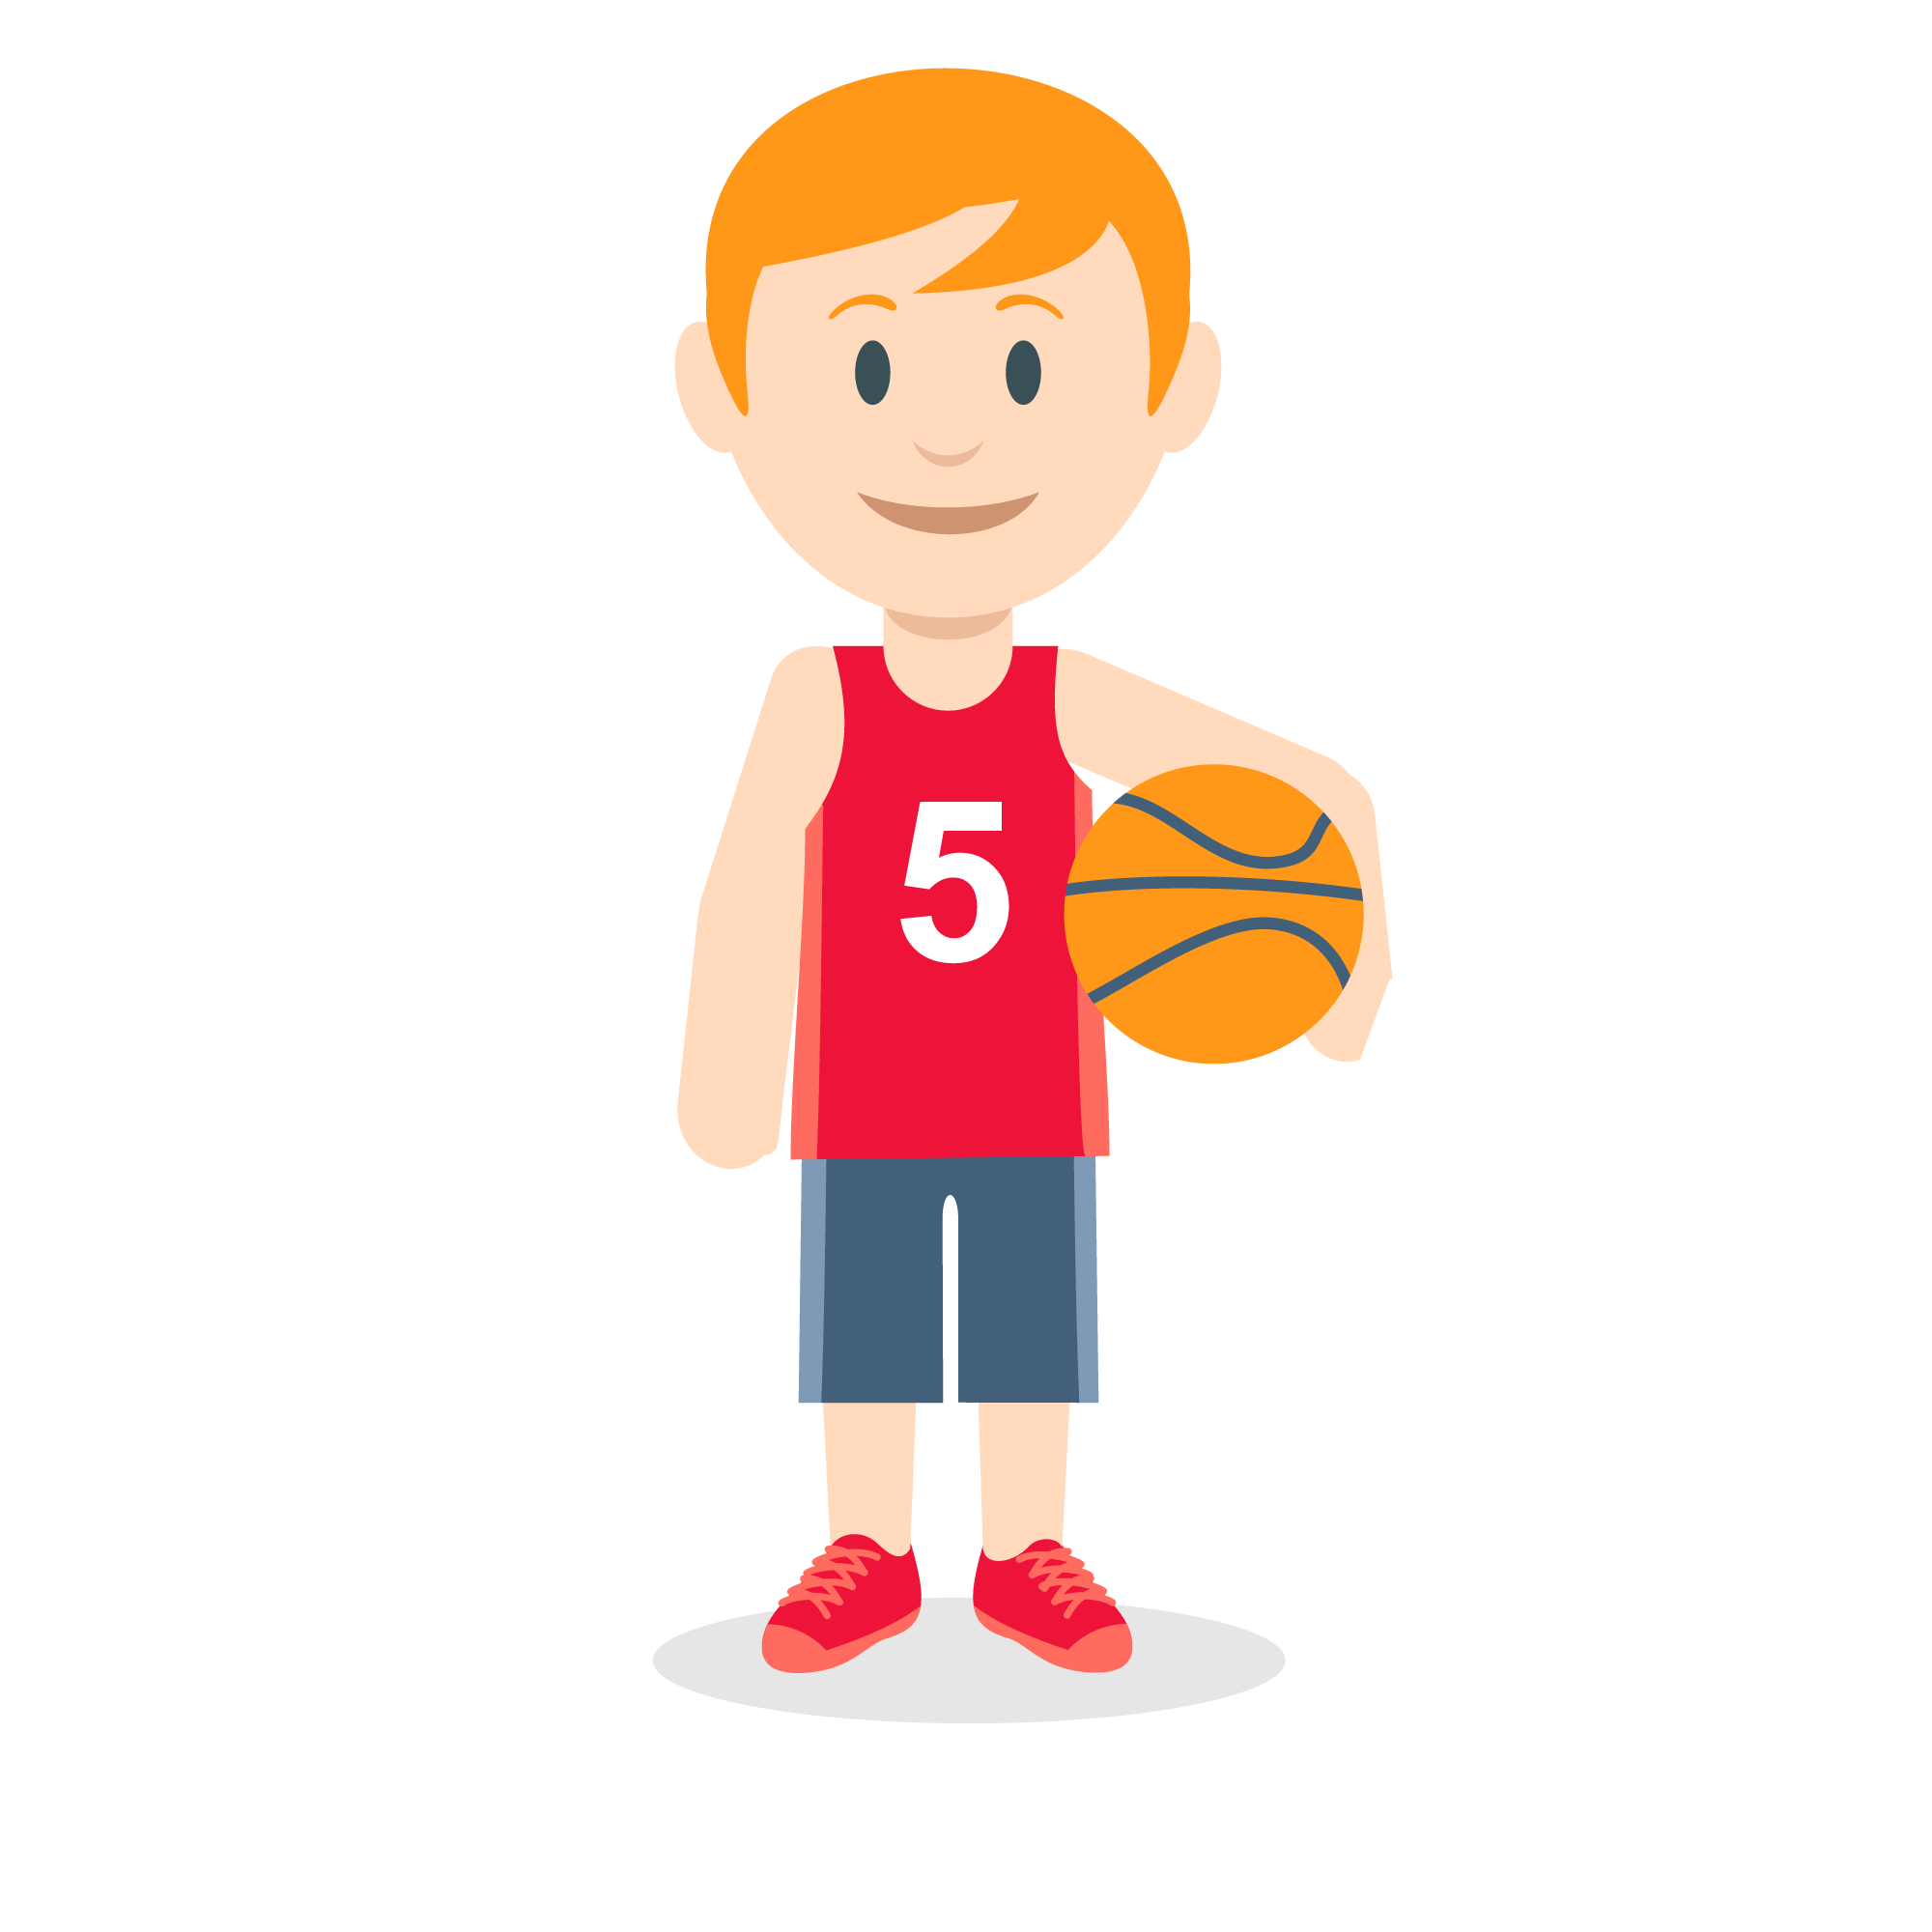 Boy shooting basketball clipart banner freeuse download Toddler Organized Sports - How Not To Do Them - Kids Fun Channel banner freeuse download